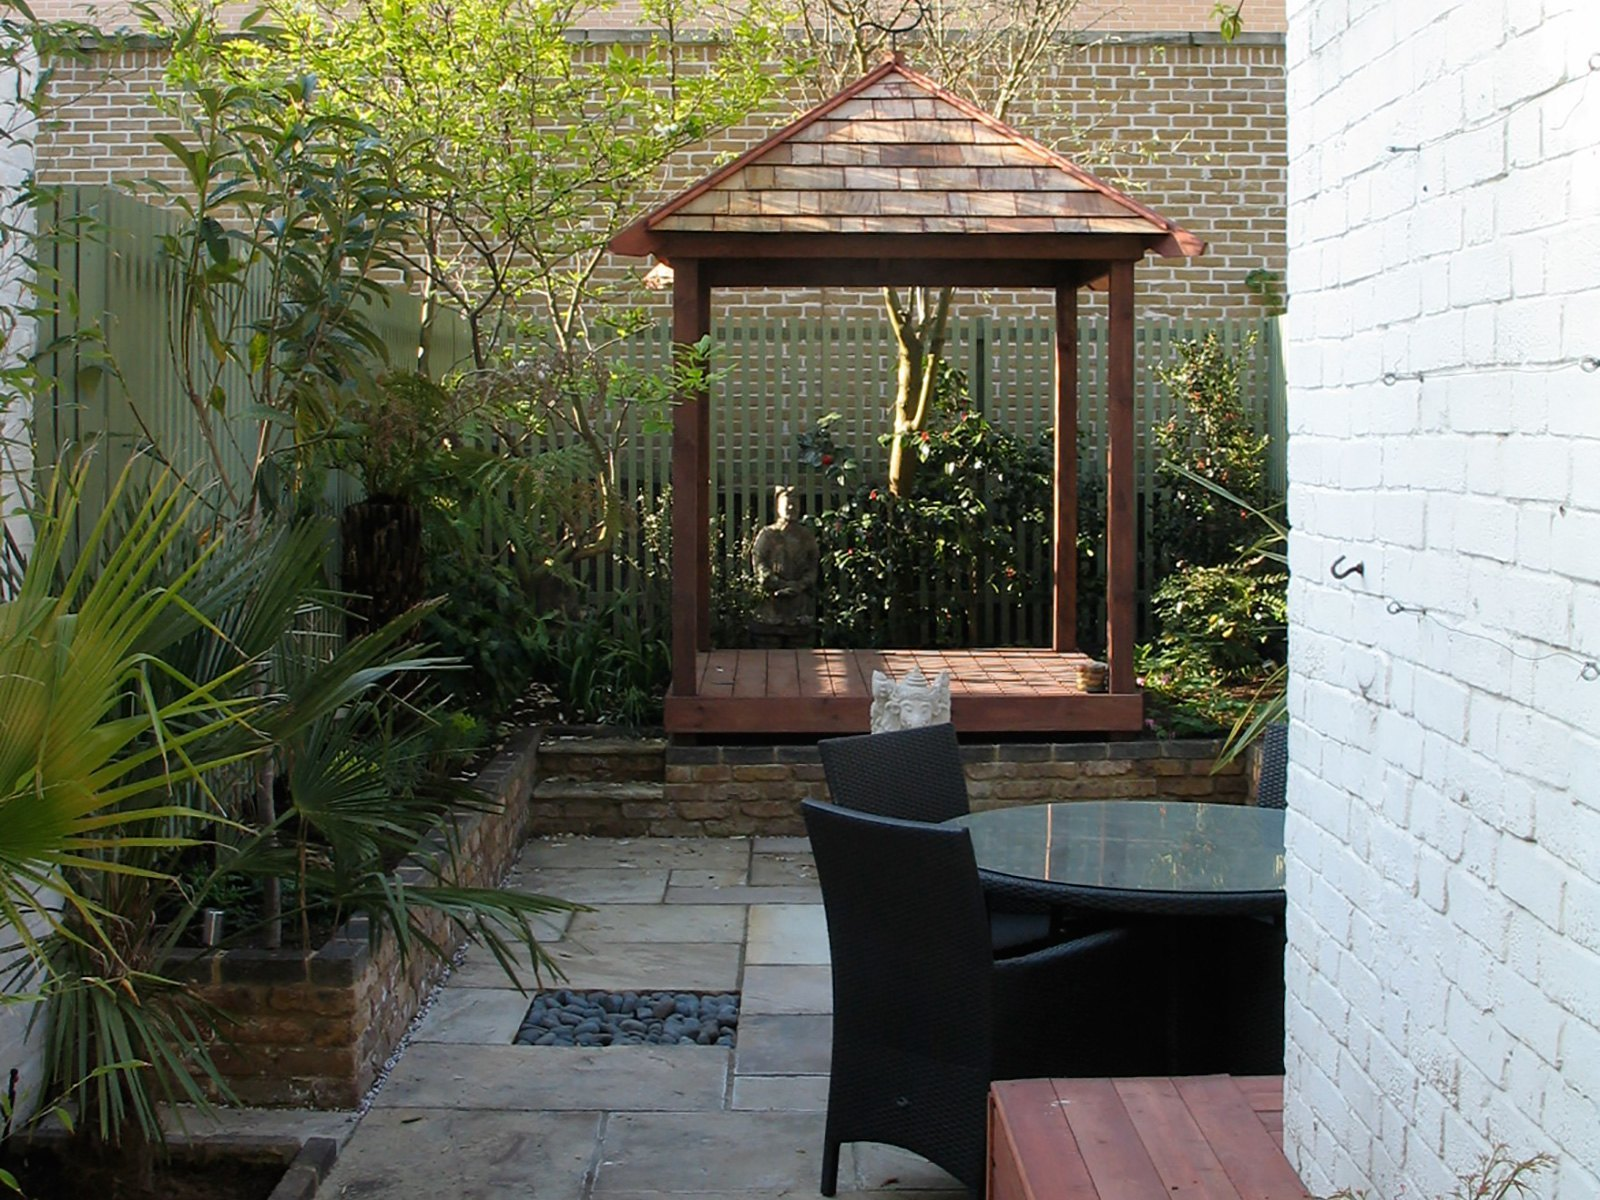 An outdoor room for daily use with a pavilion designed especially for yoga and meditation.